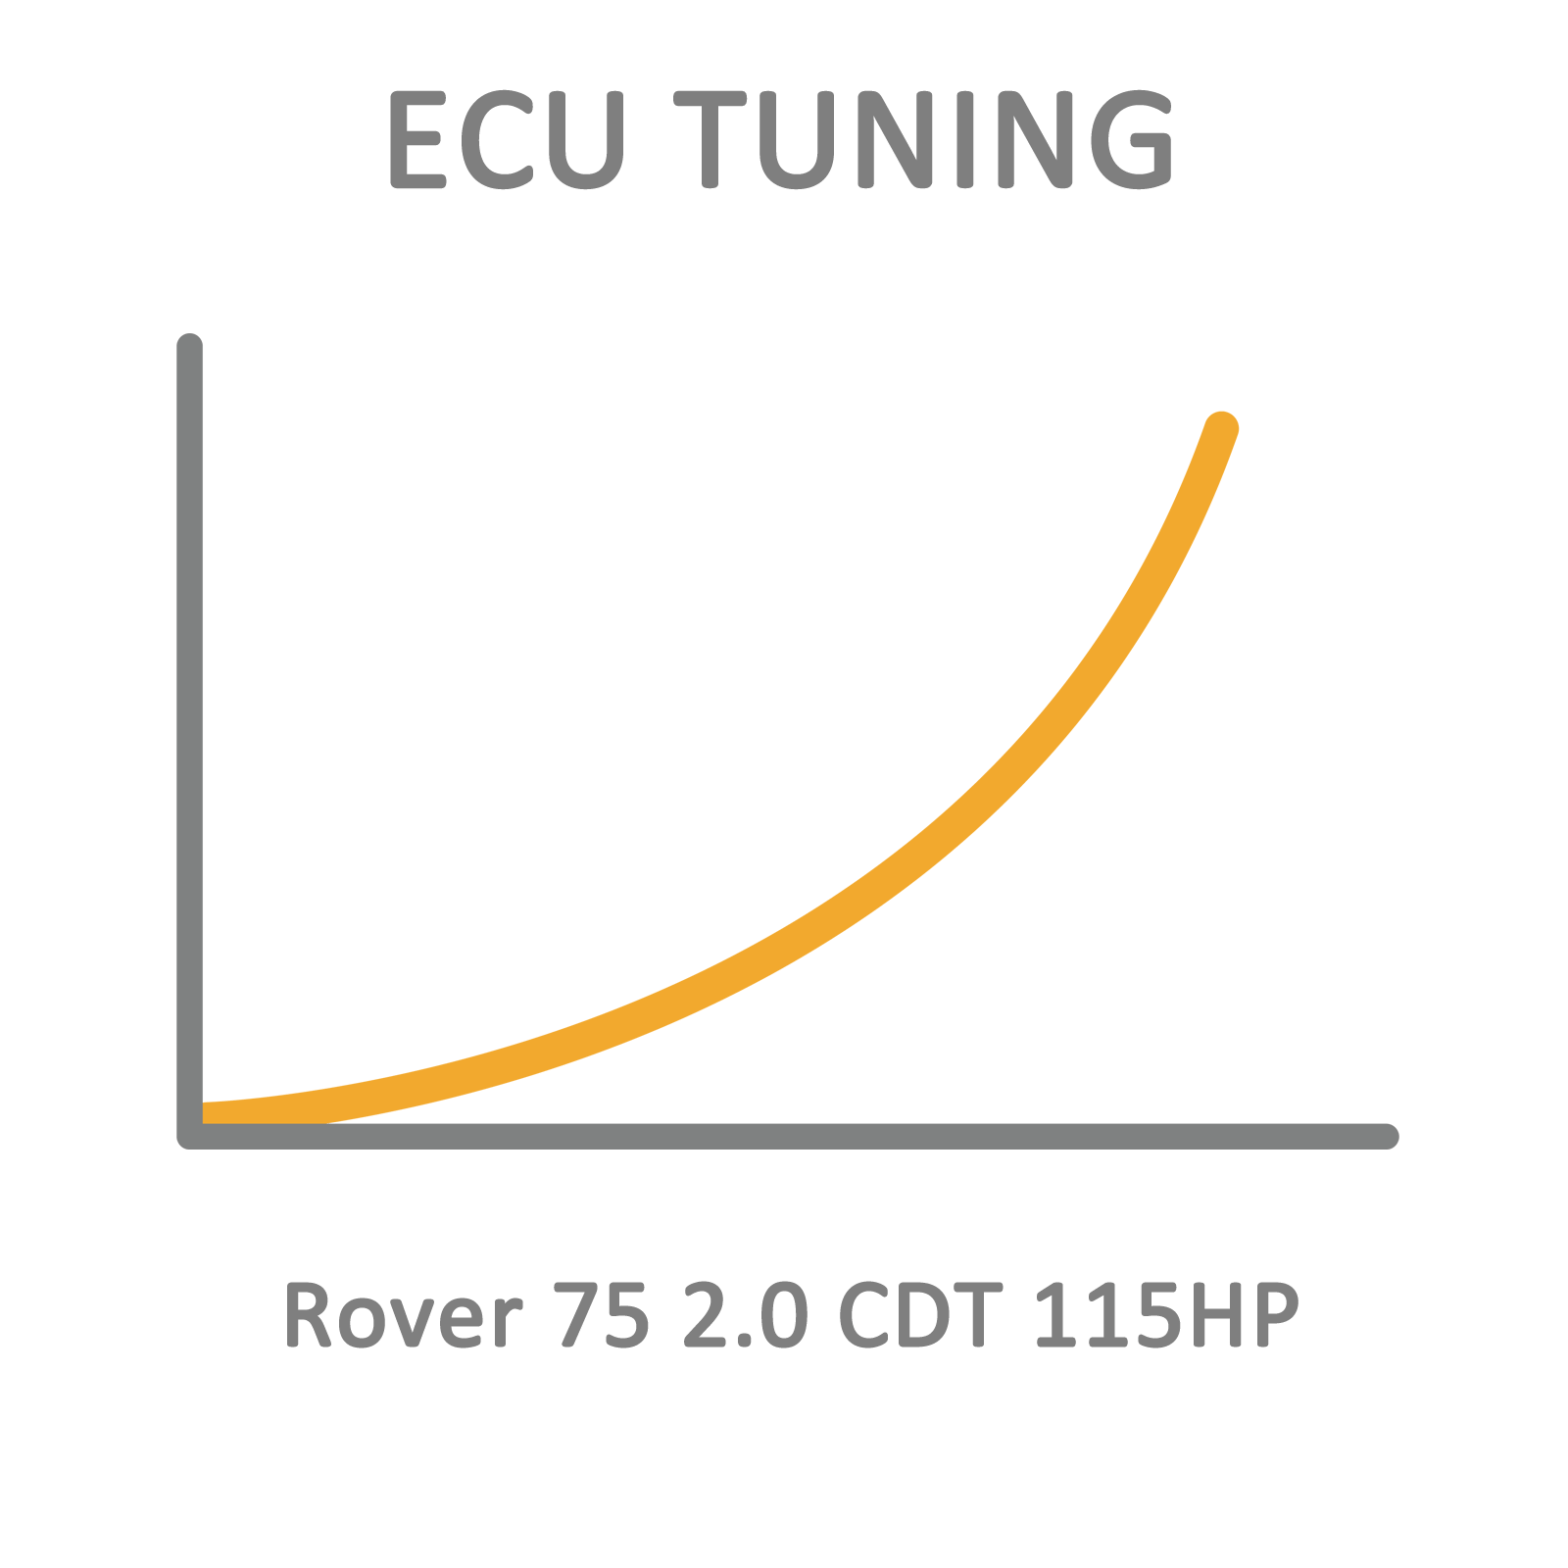 Rover 75 2.0 CDT 115HP ECU Tuning Remapping Programming